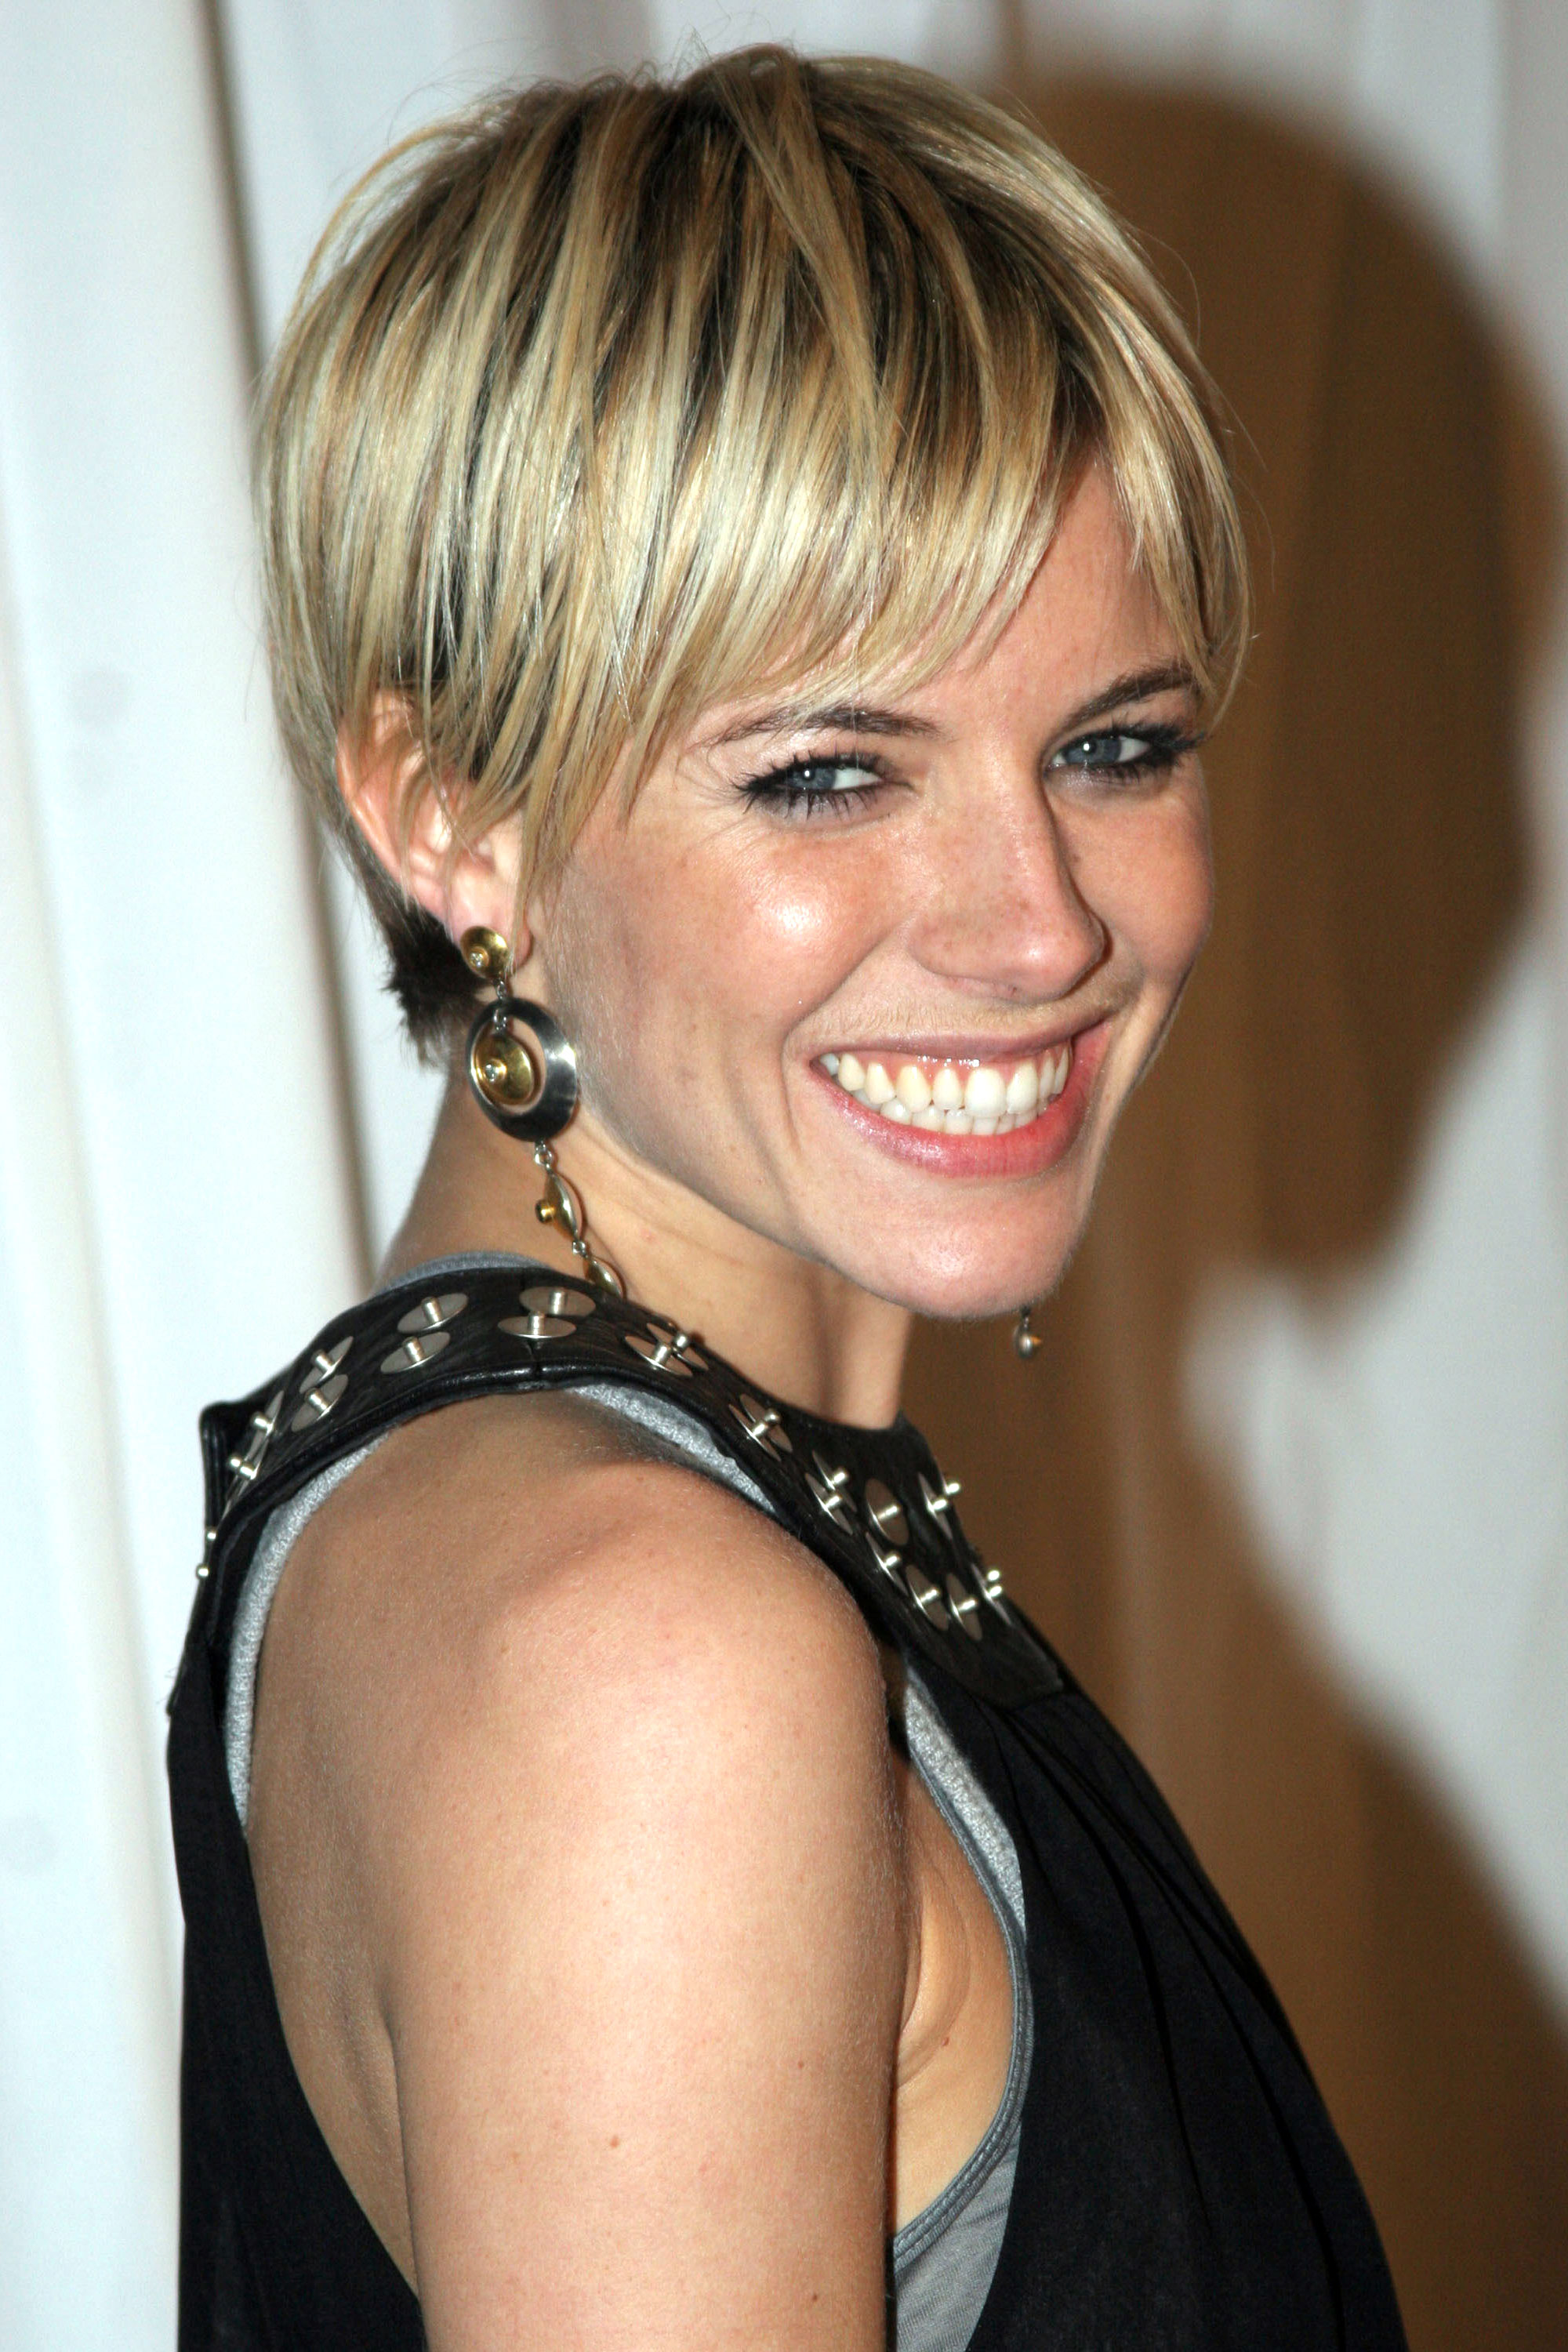 Awe Inspiring 42 Pixie Cuts We Love For 2017 Short Pixie Hairstyles From Short Hairstyles Gunalazisus